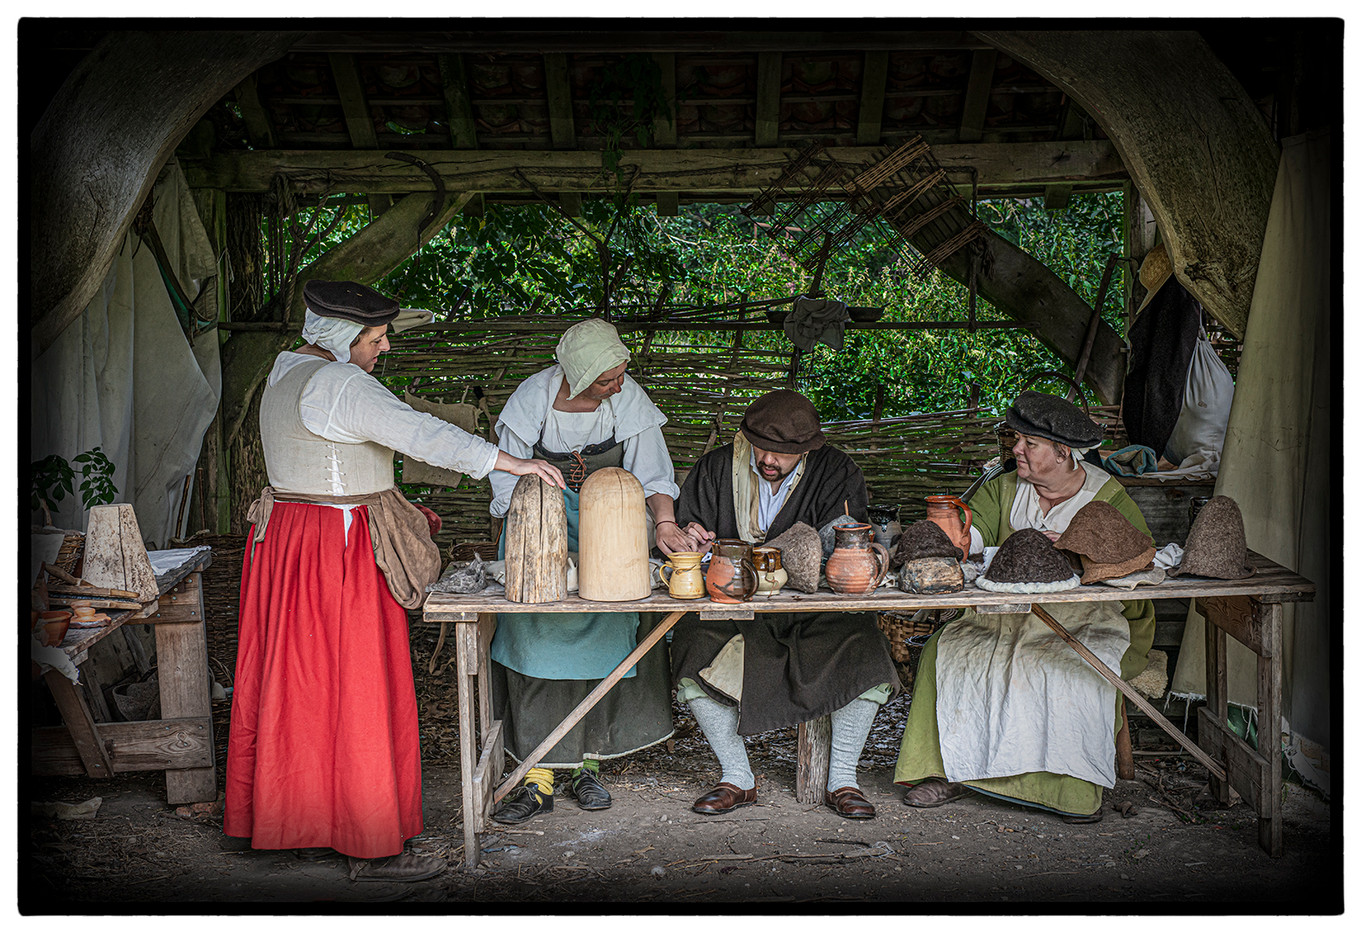 17 16TH CENTURY MILLINERS by Mick Dudley